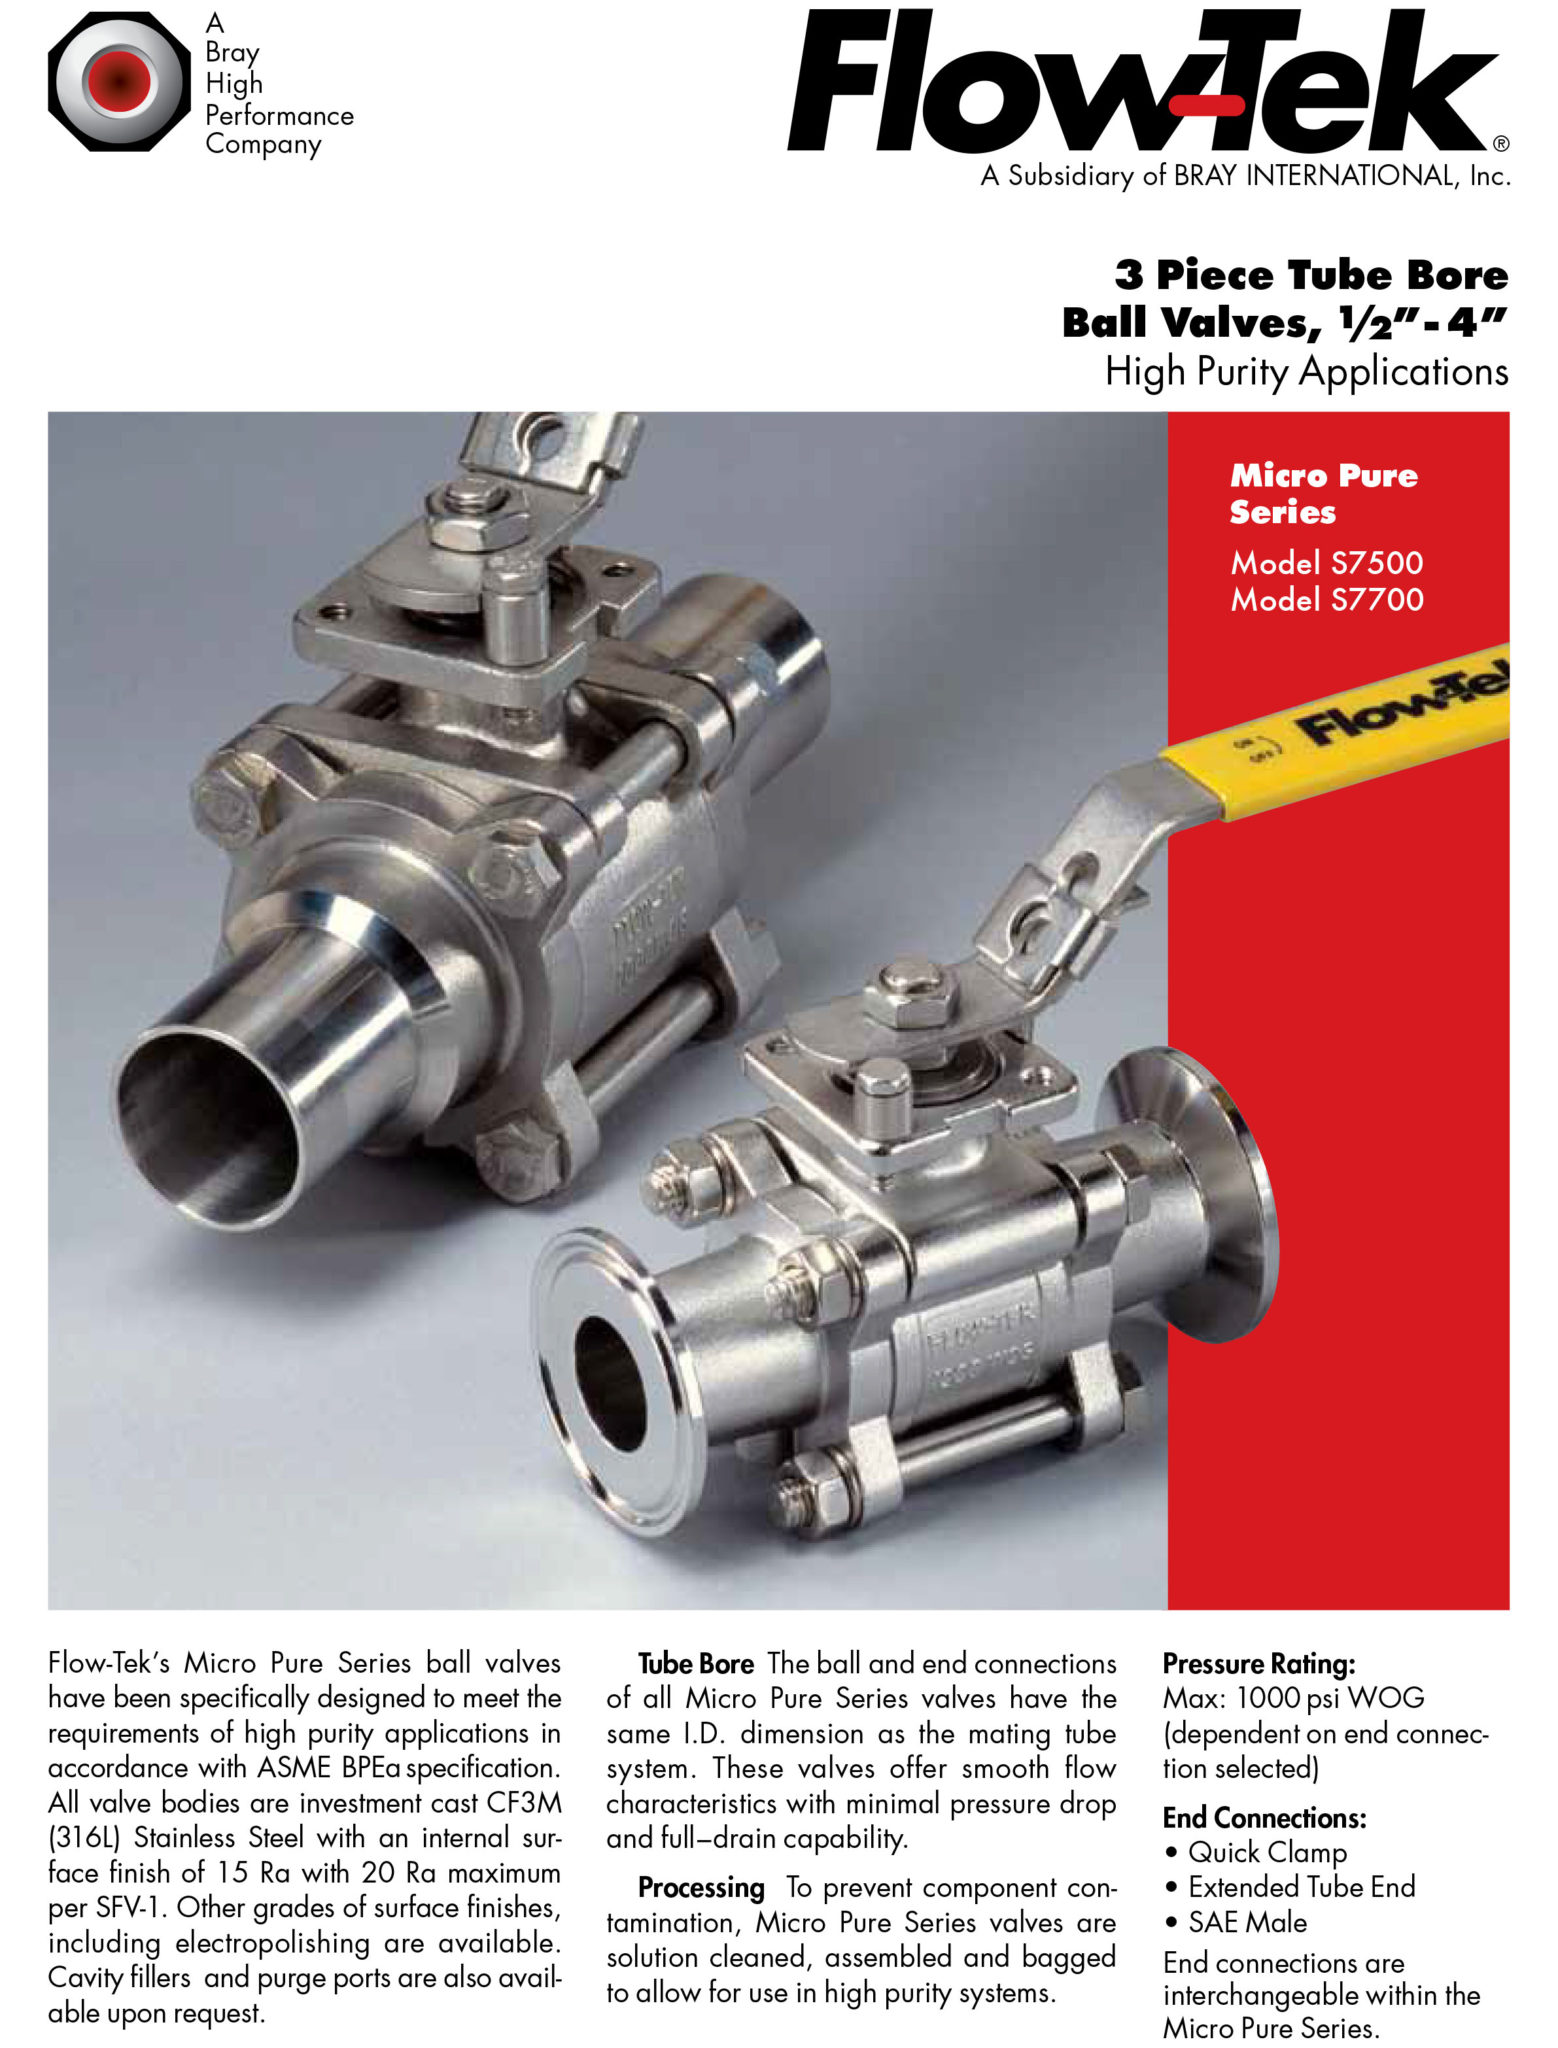 3 Piece Tube Bore Ball Valves